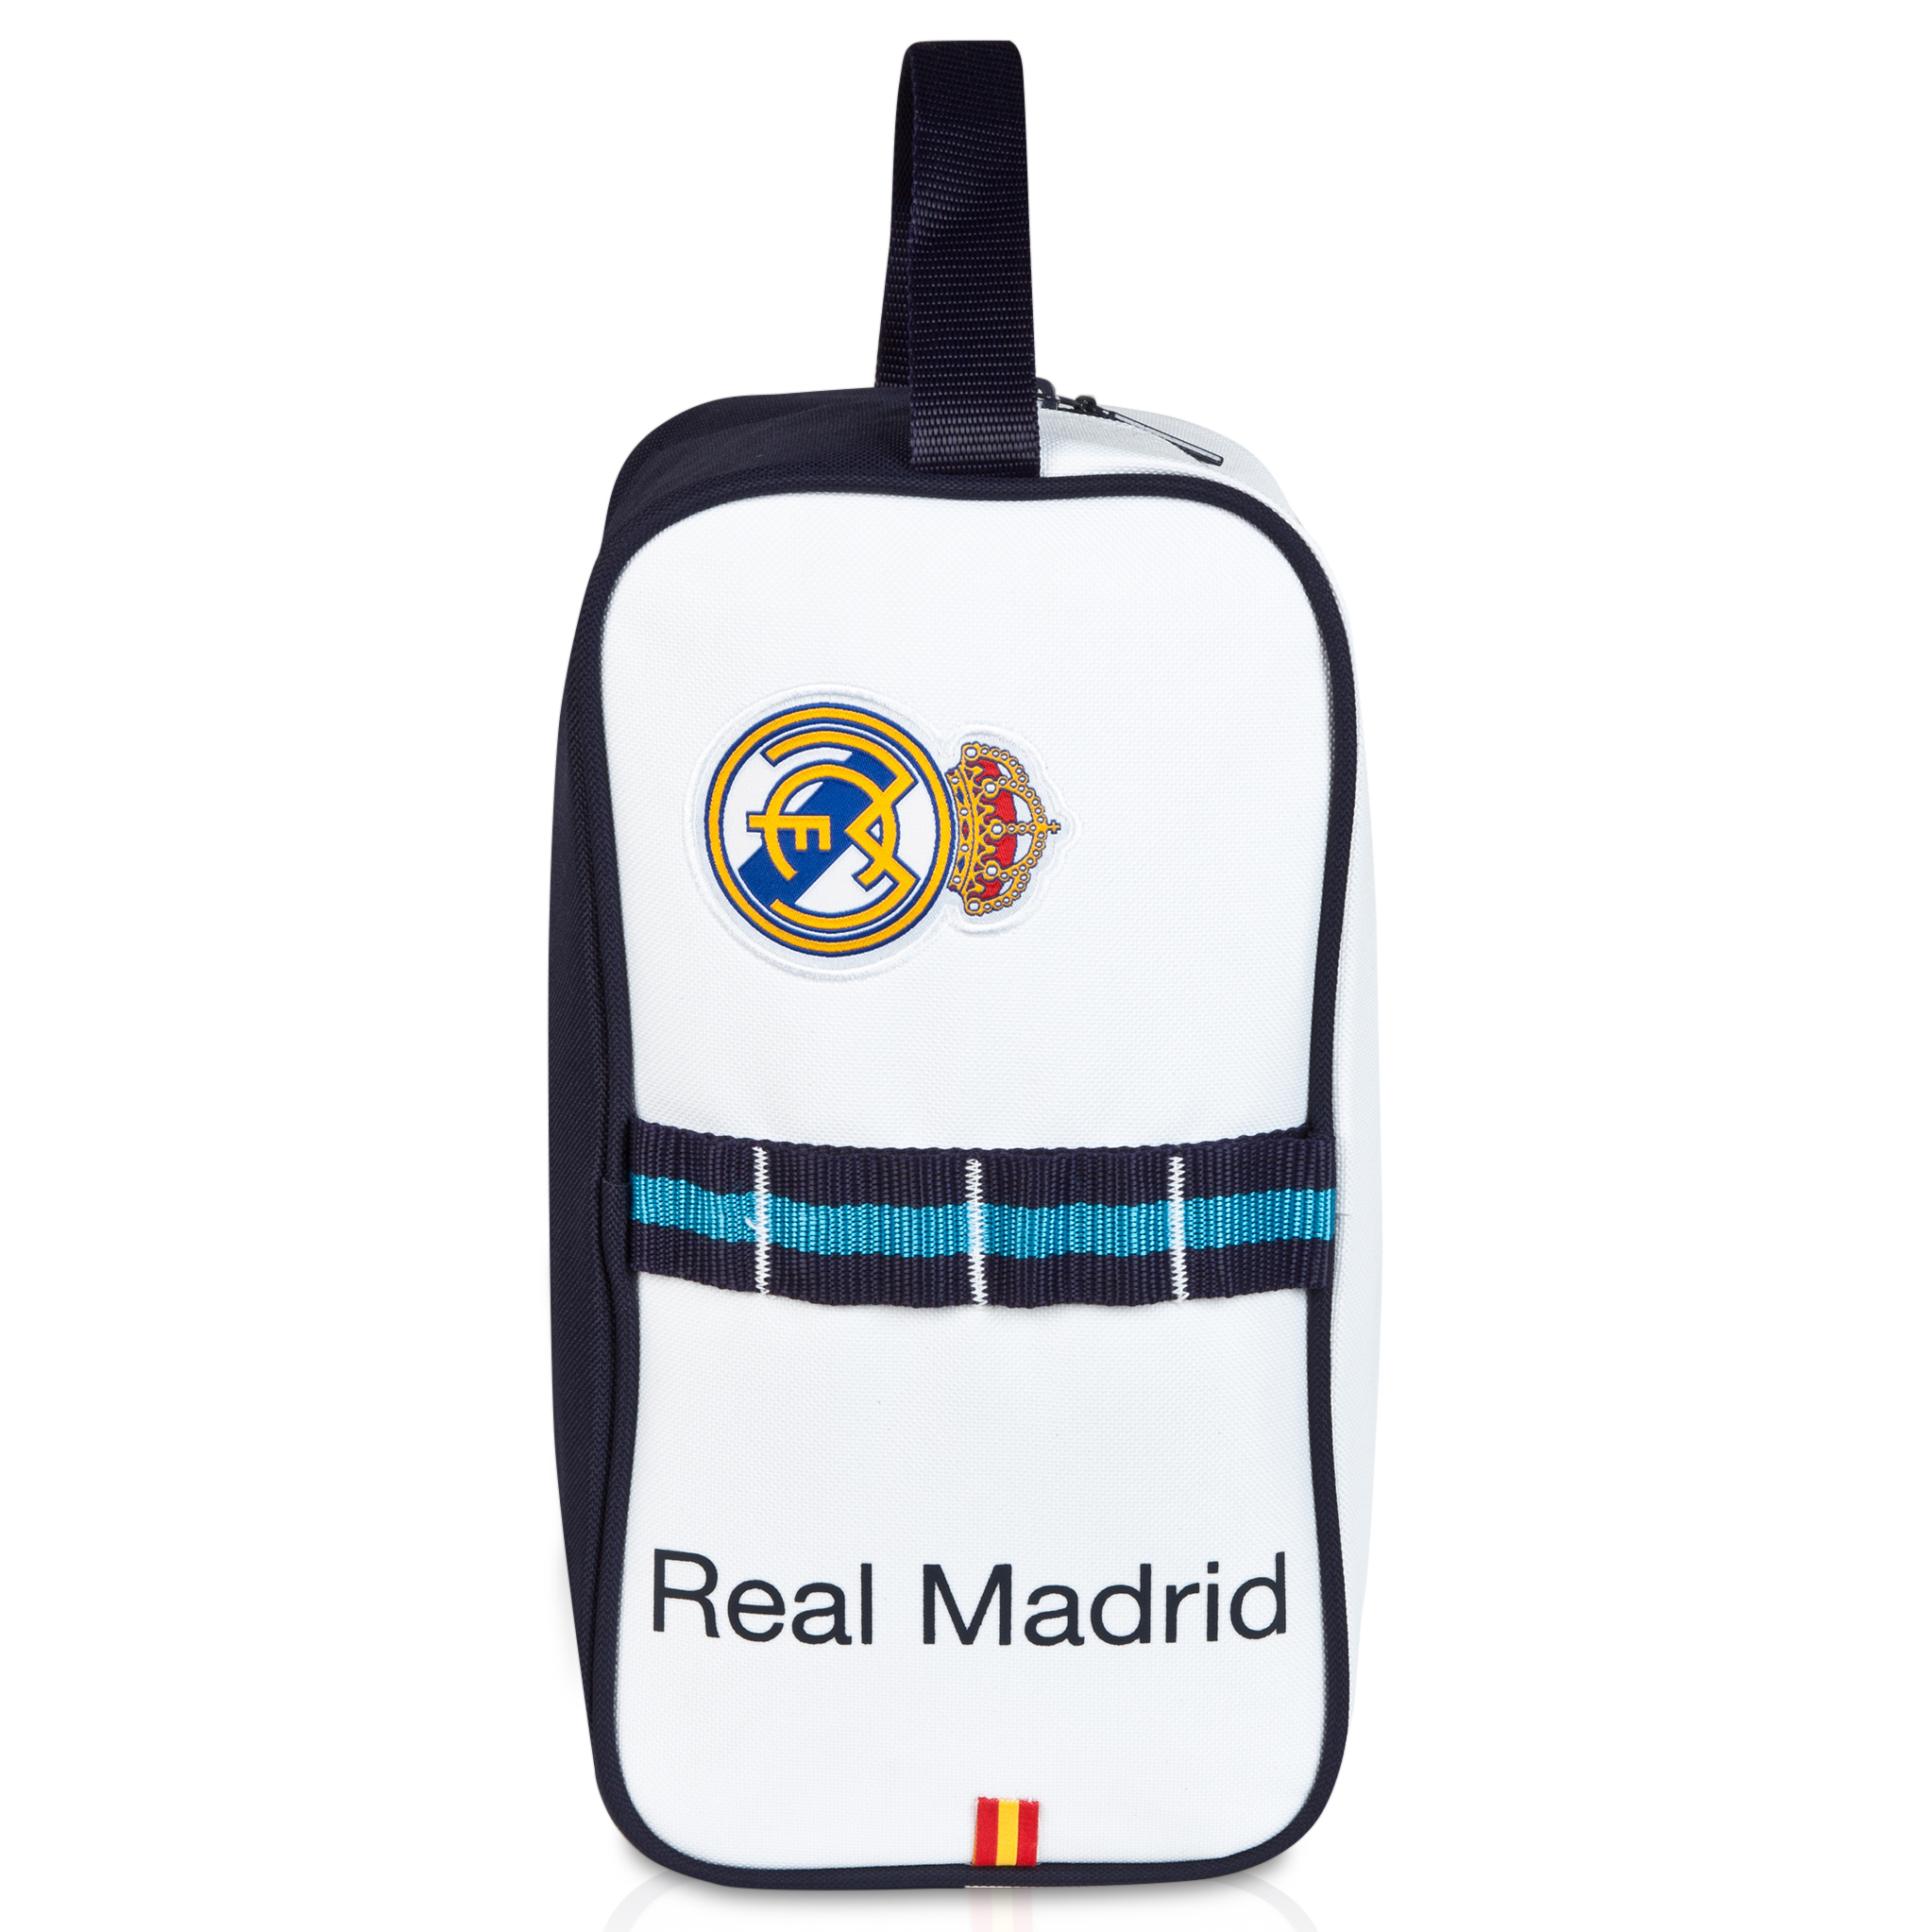 Real Madrid Boot Bag - 290 x 150 x 140mm